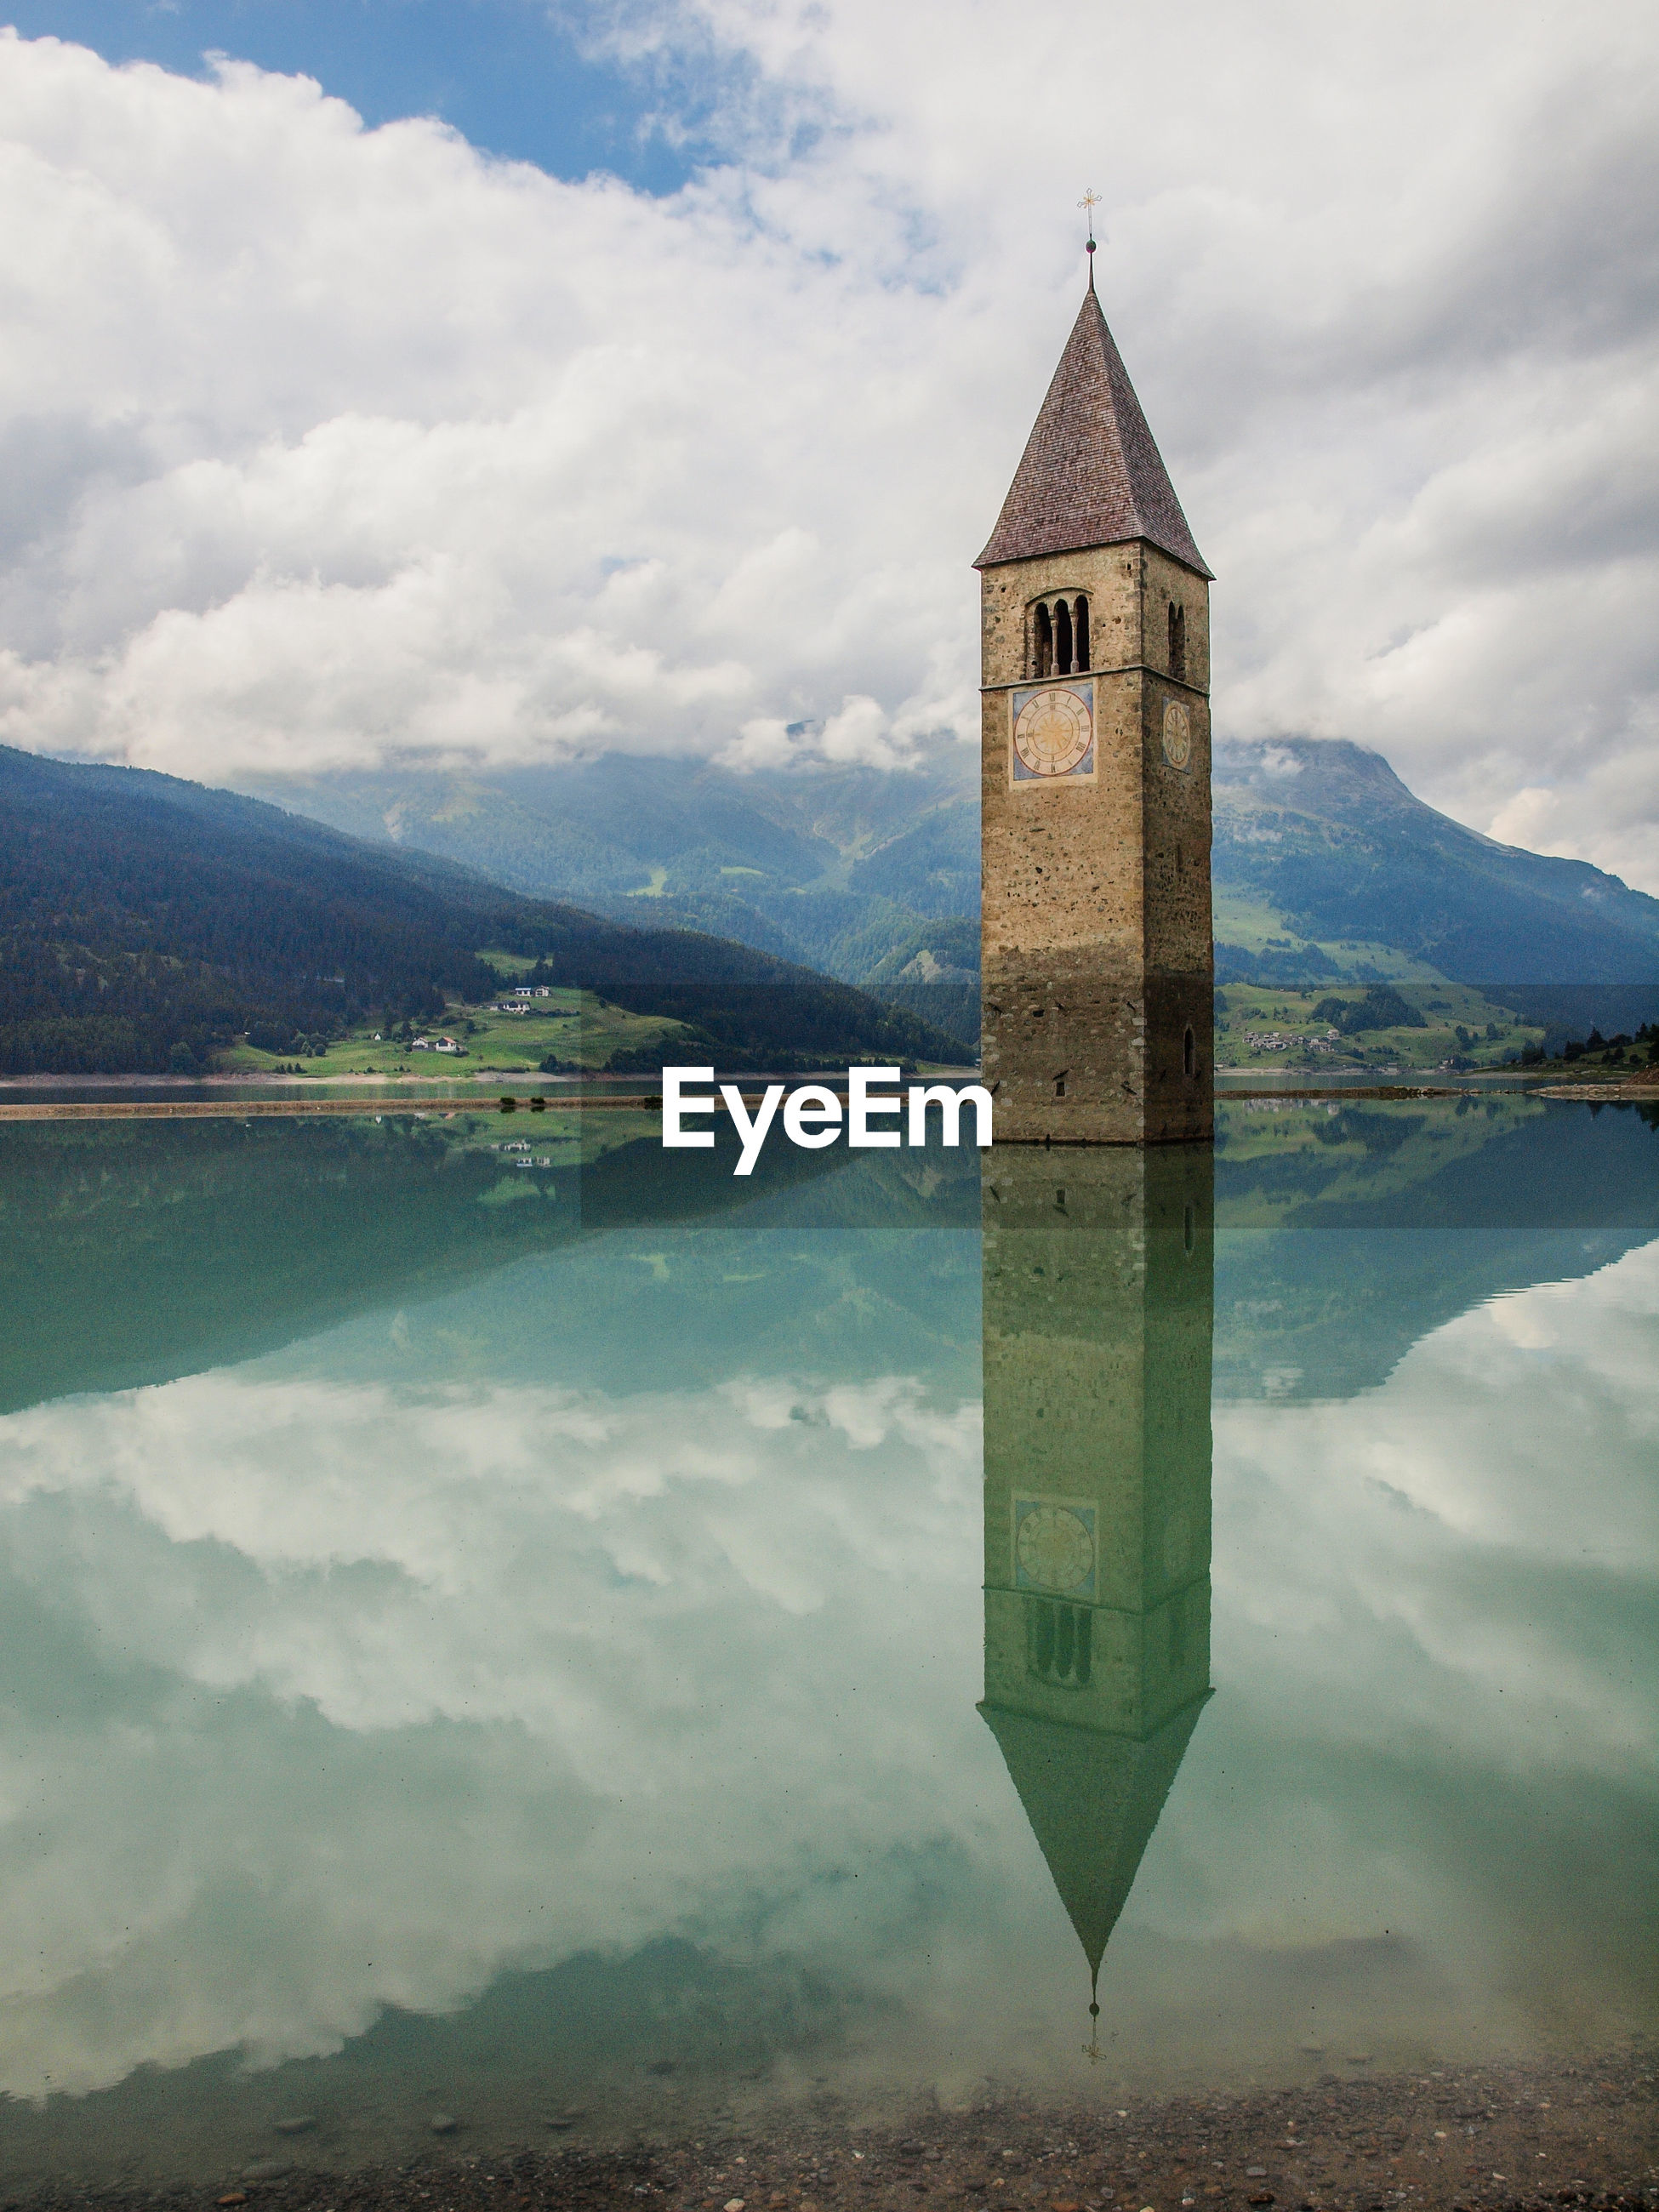 REFLECTION OF TOWER ON LAKE